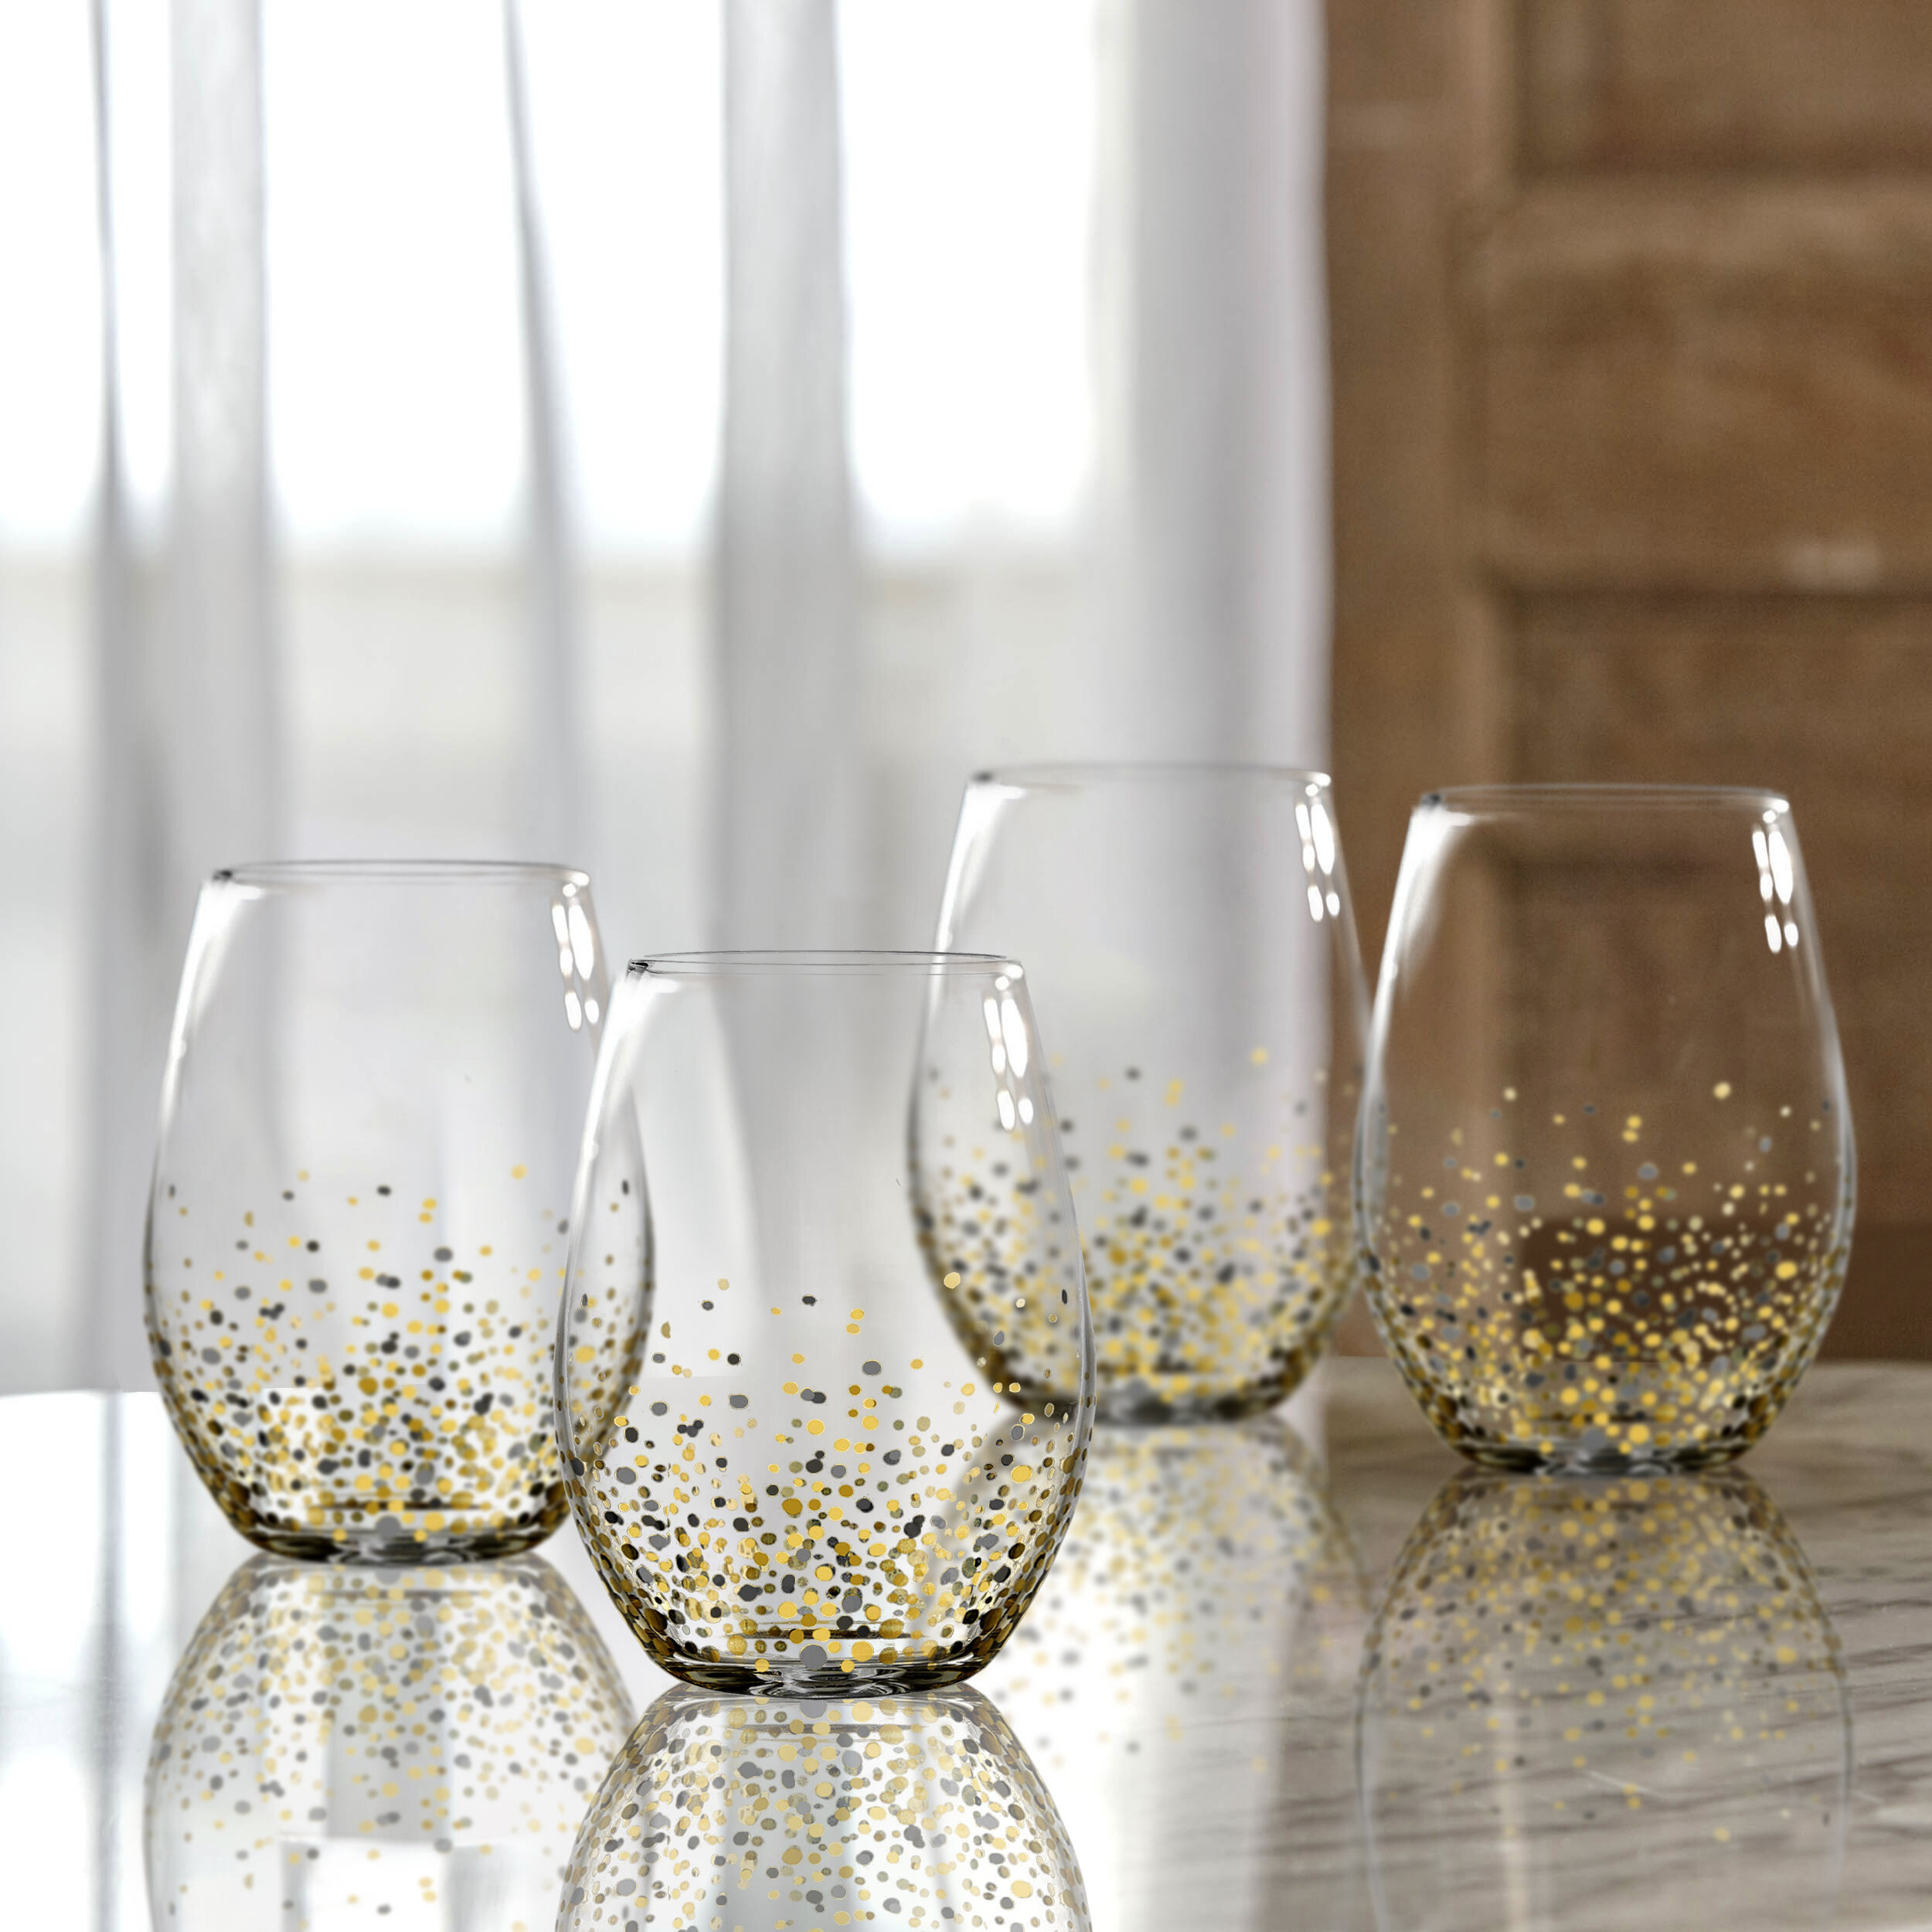 Painted Stemless Wine Glasses Casual Drinkware You Ll Love In 2021 Wayfair